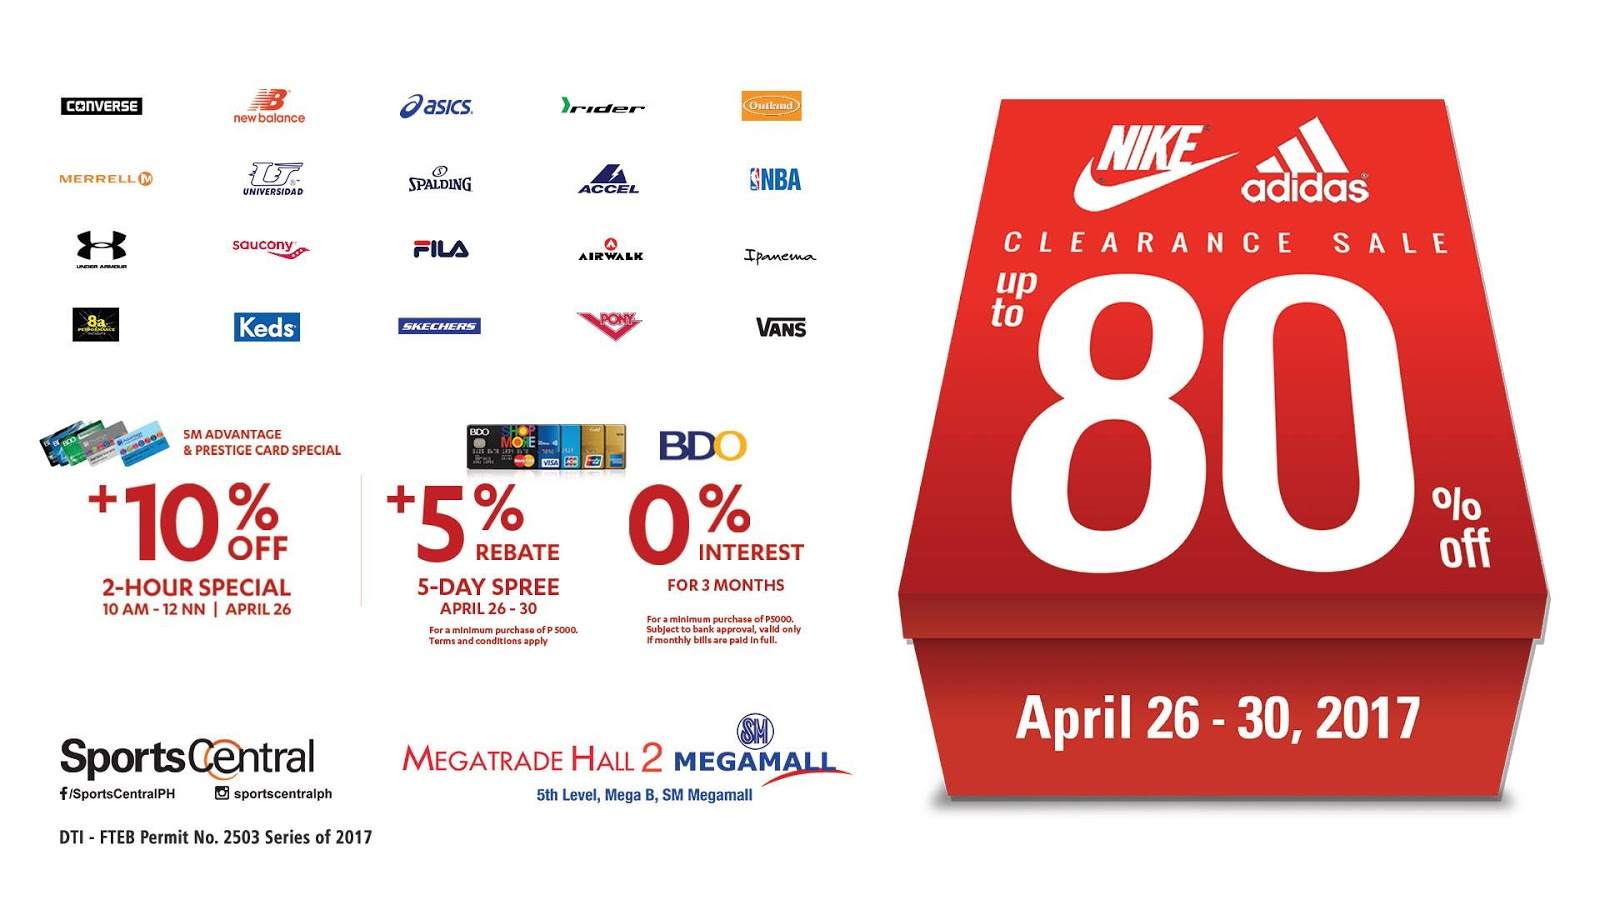 ddbbee9d0fb Manila Shopper  Nike   Adidas +more   Sports Central s Clearance ...